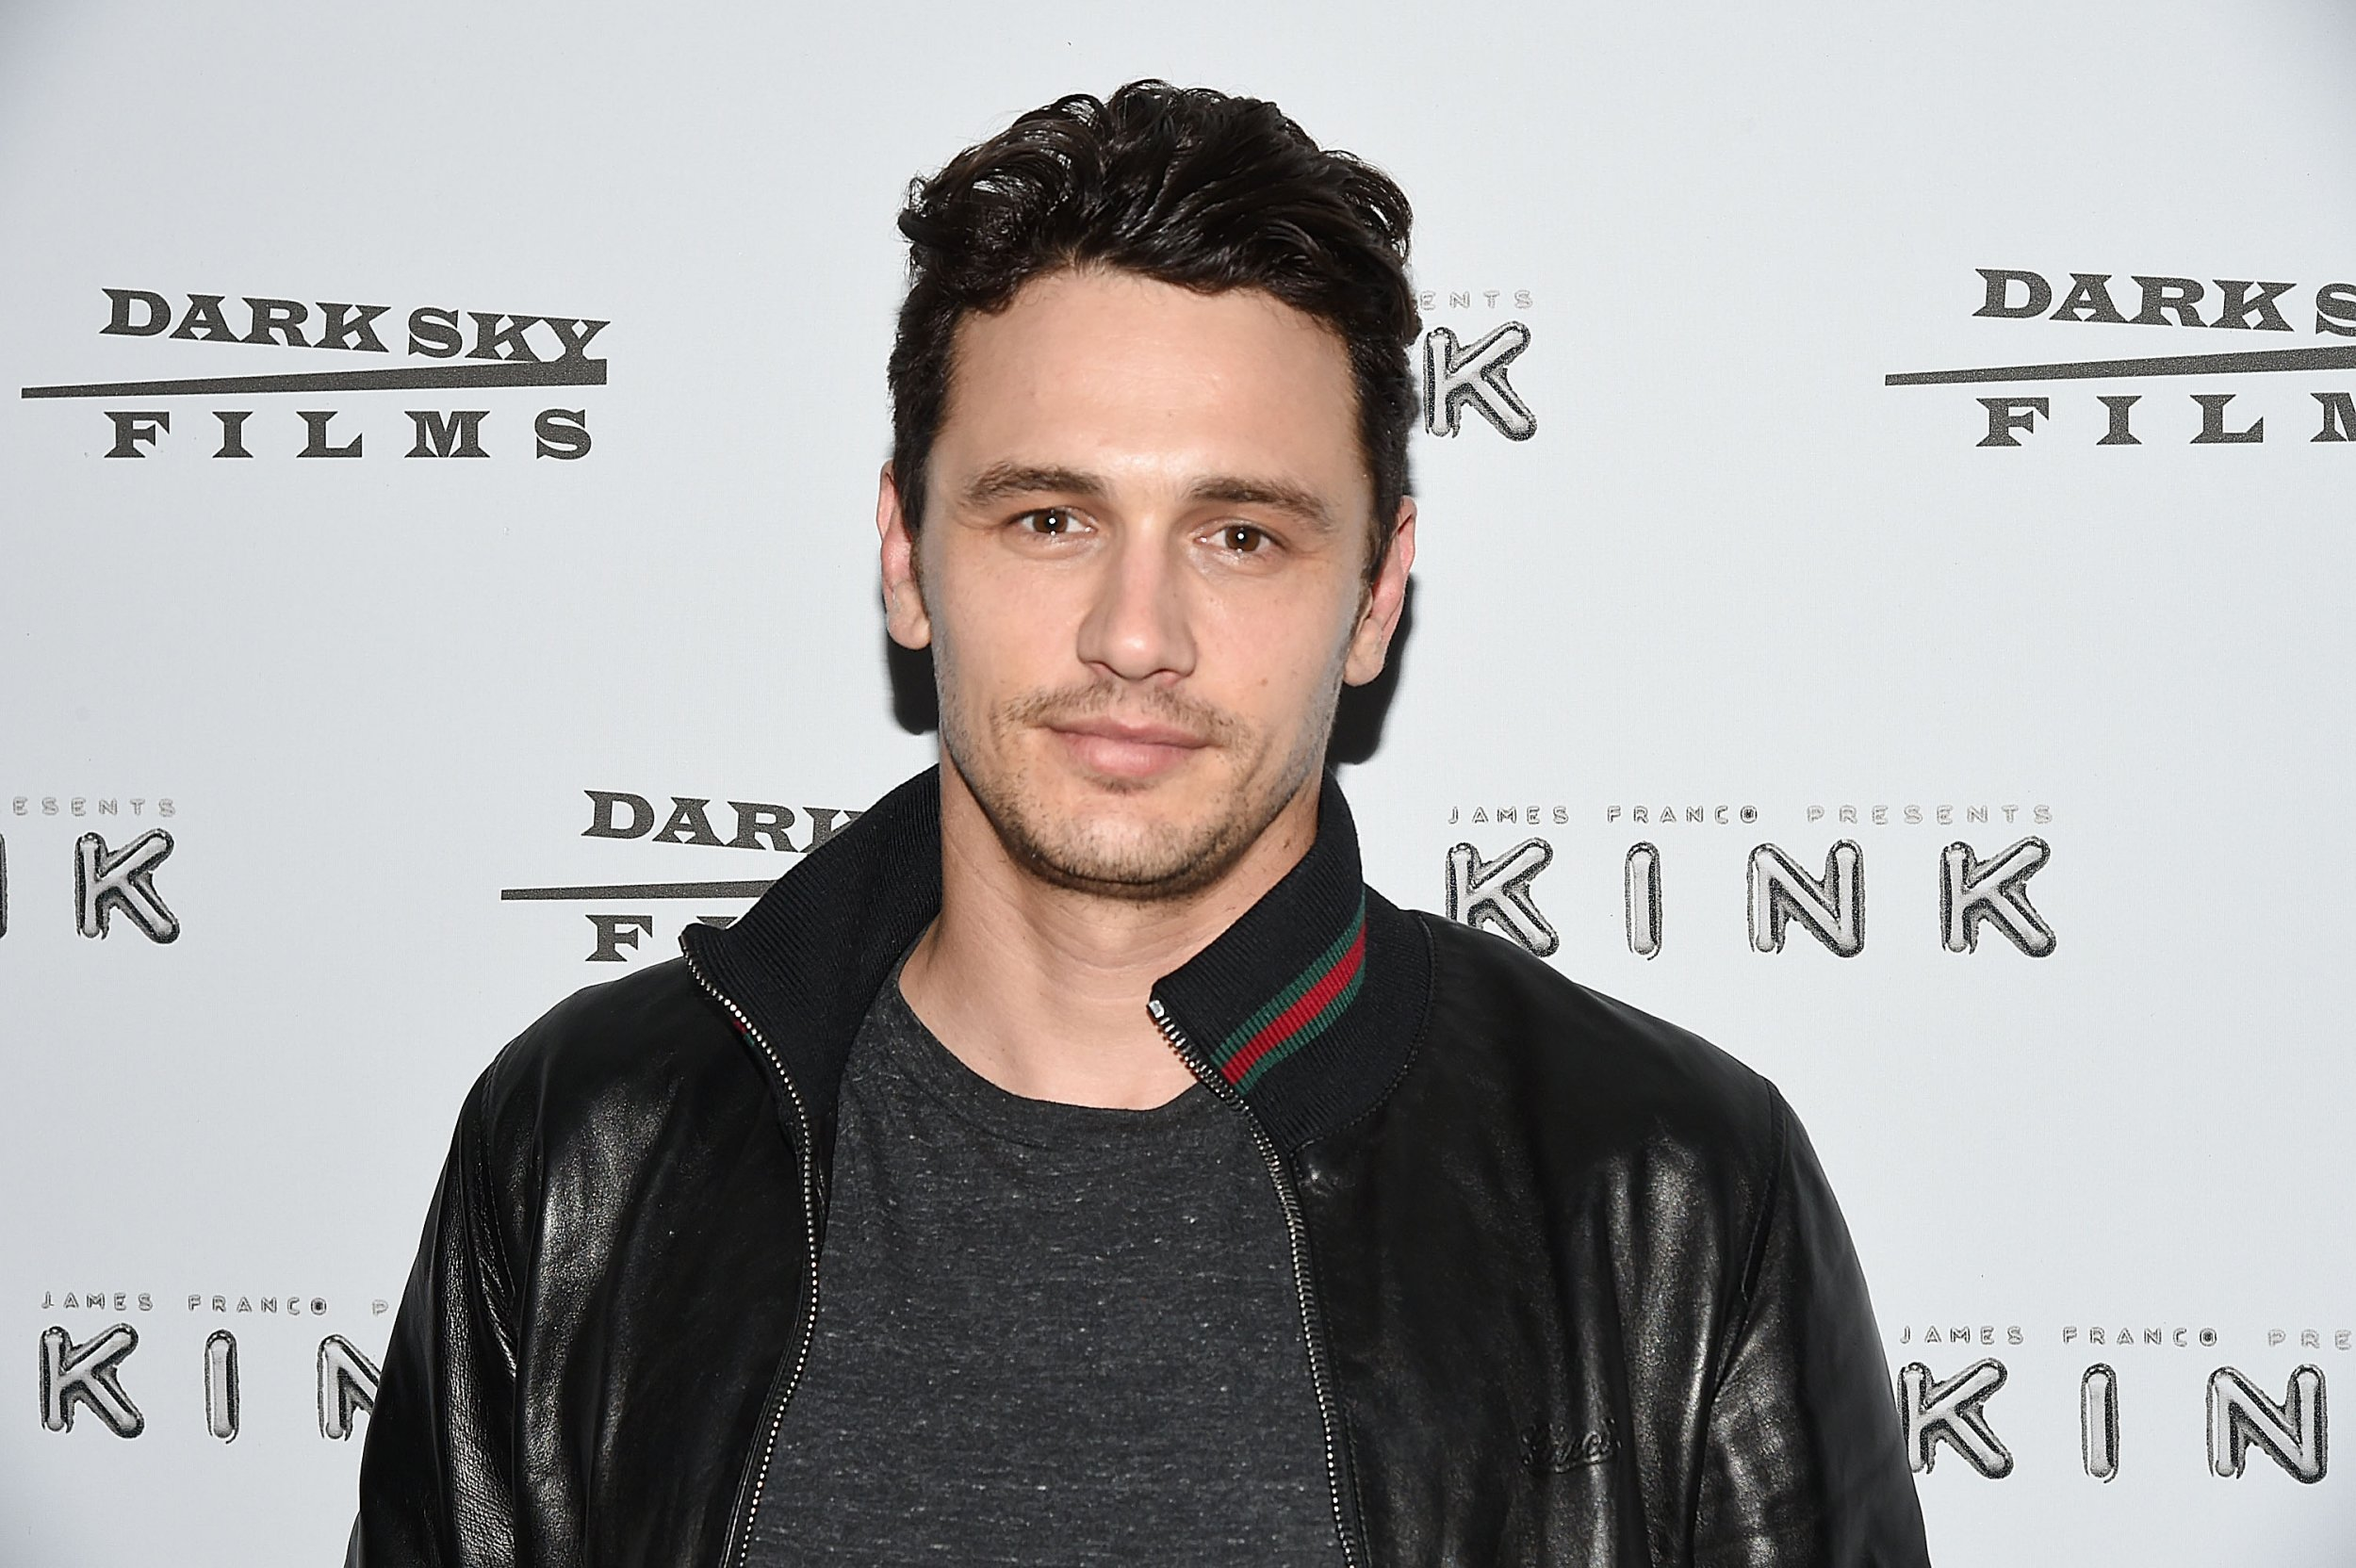 James Franco at Kink premiere